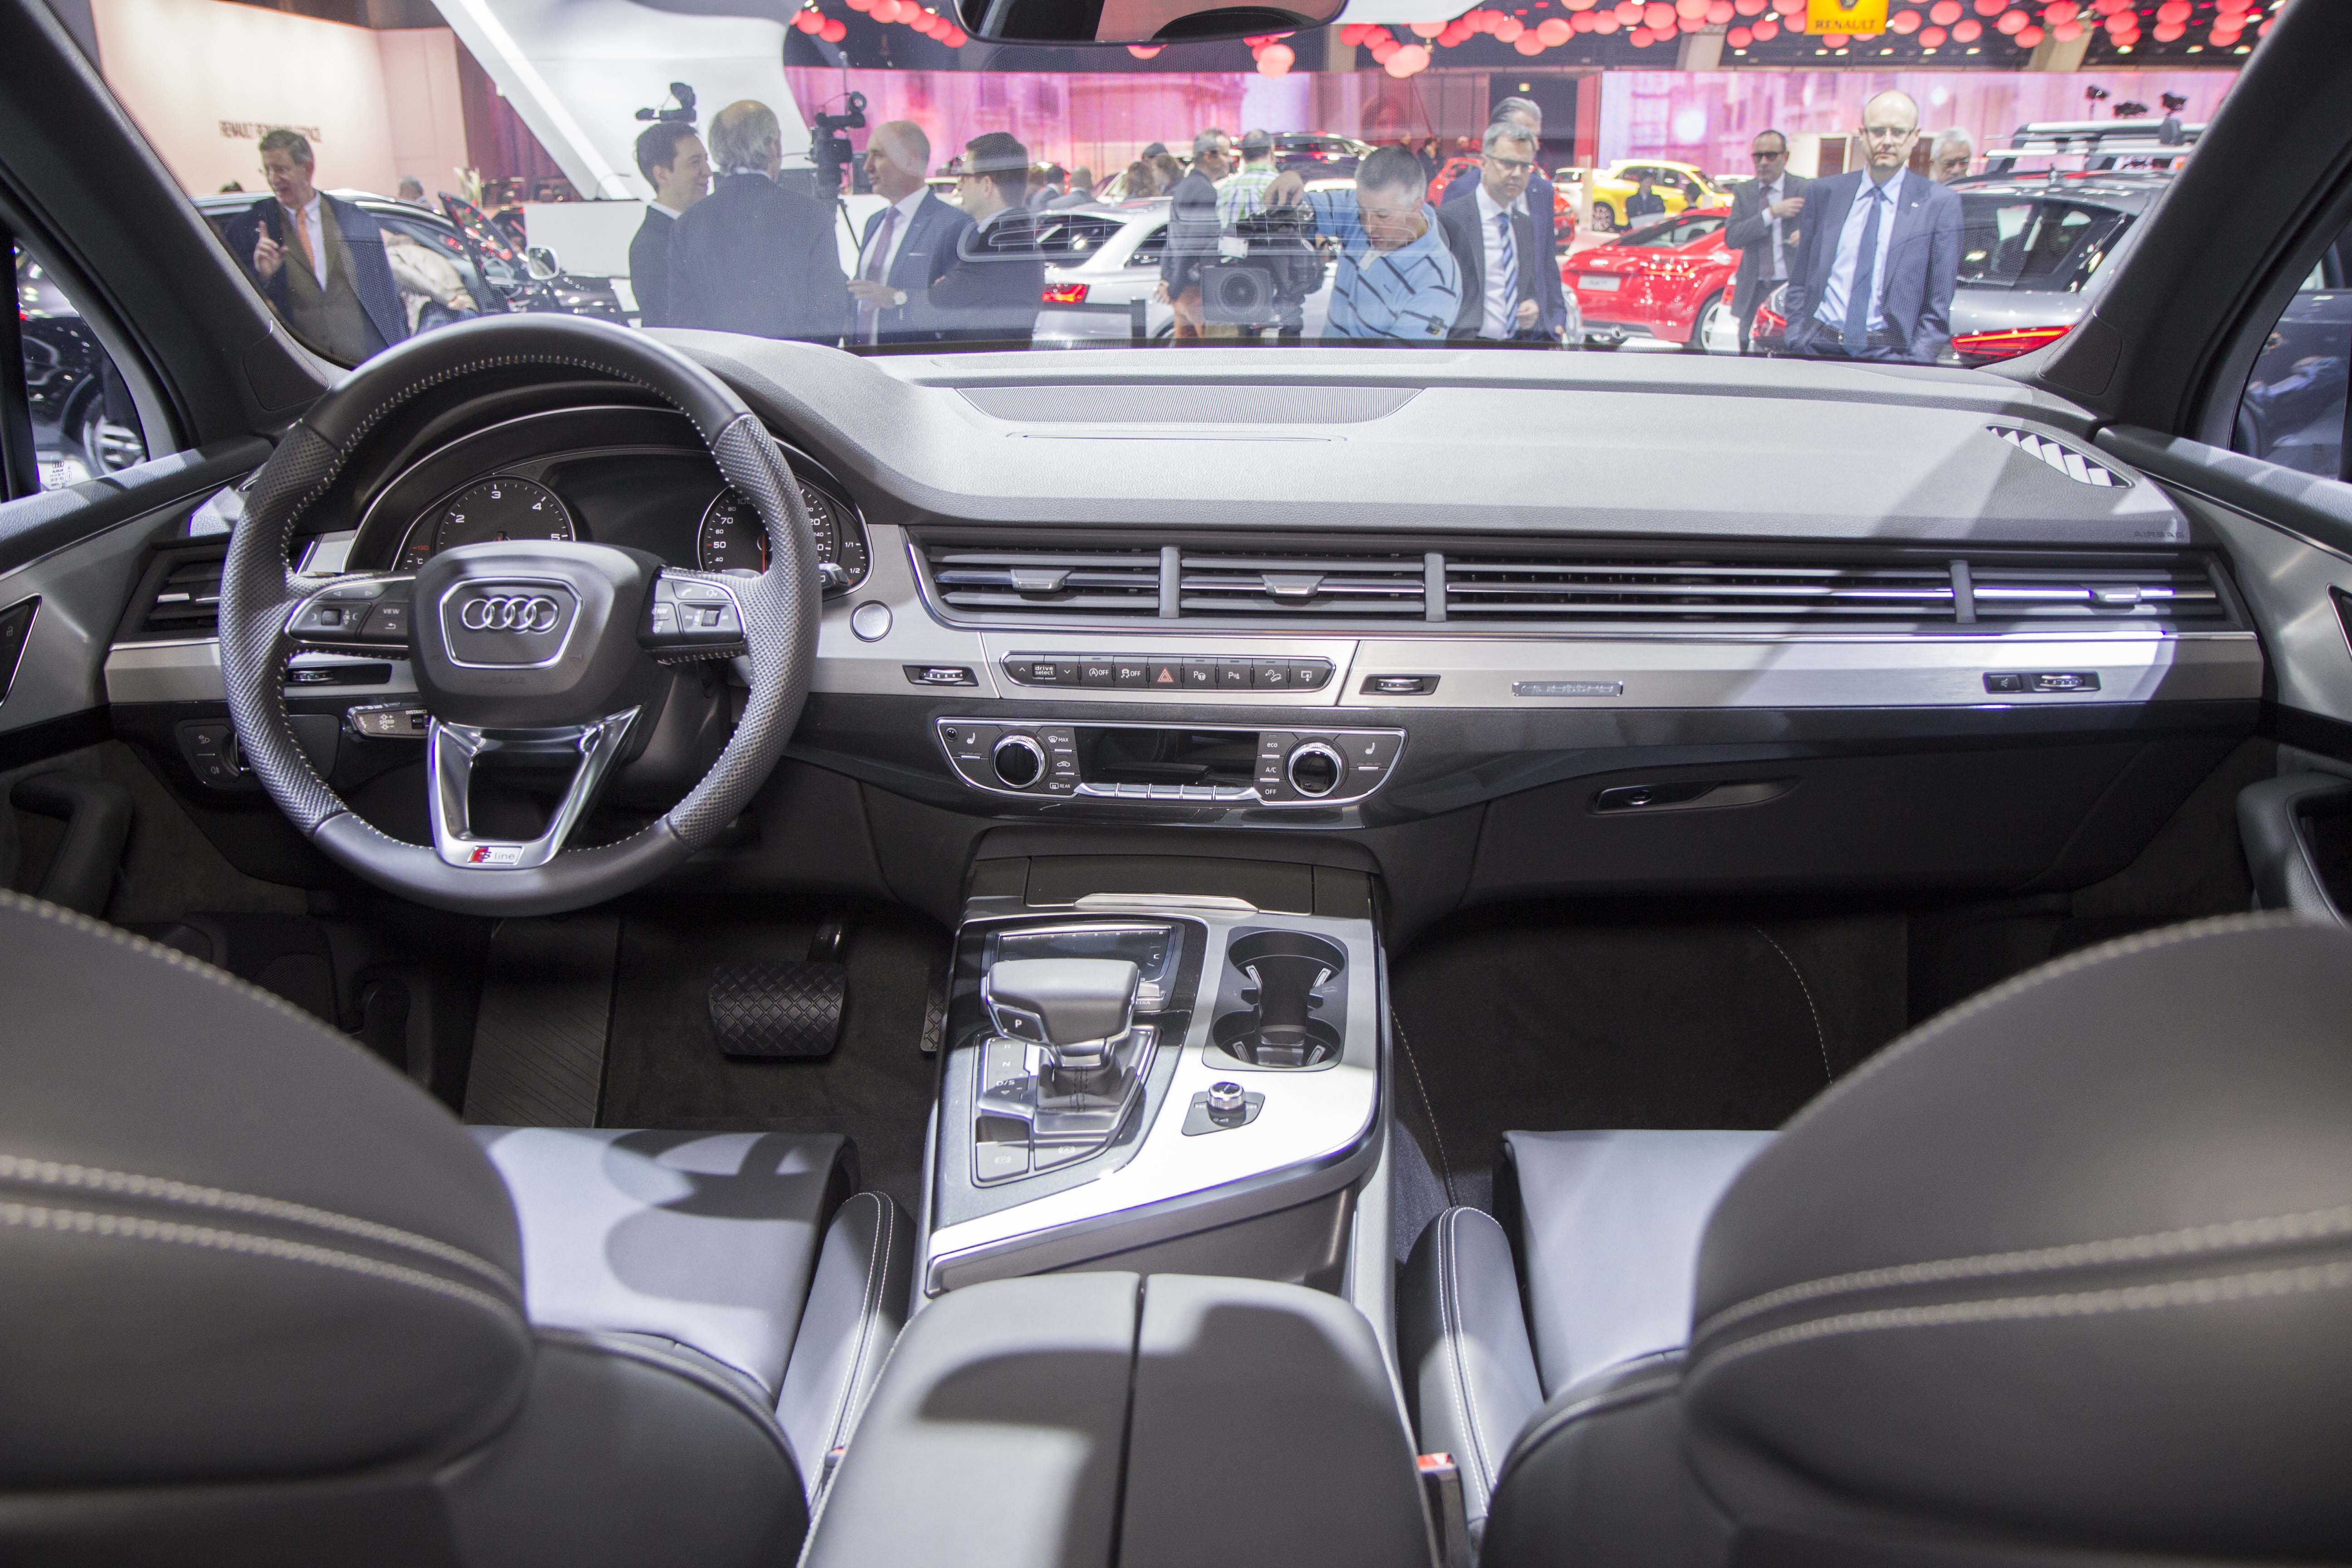 Vid o en direct du salon de bruxelles 2015 audi q7 la for Interieur q7